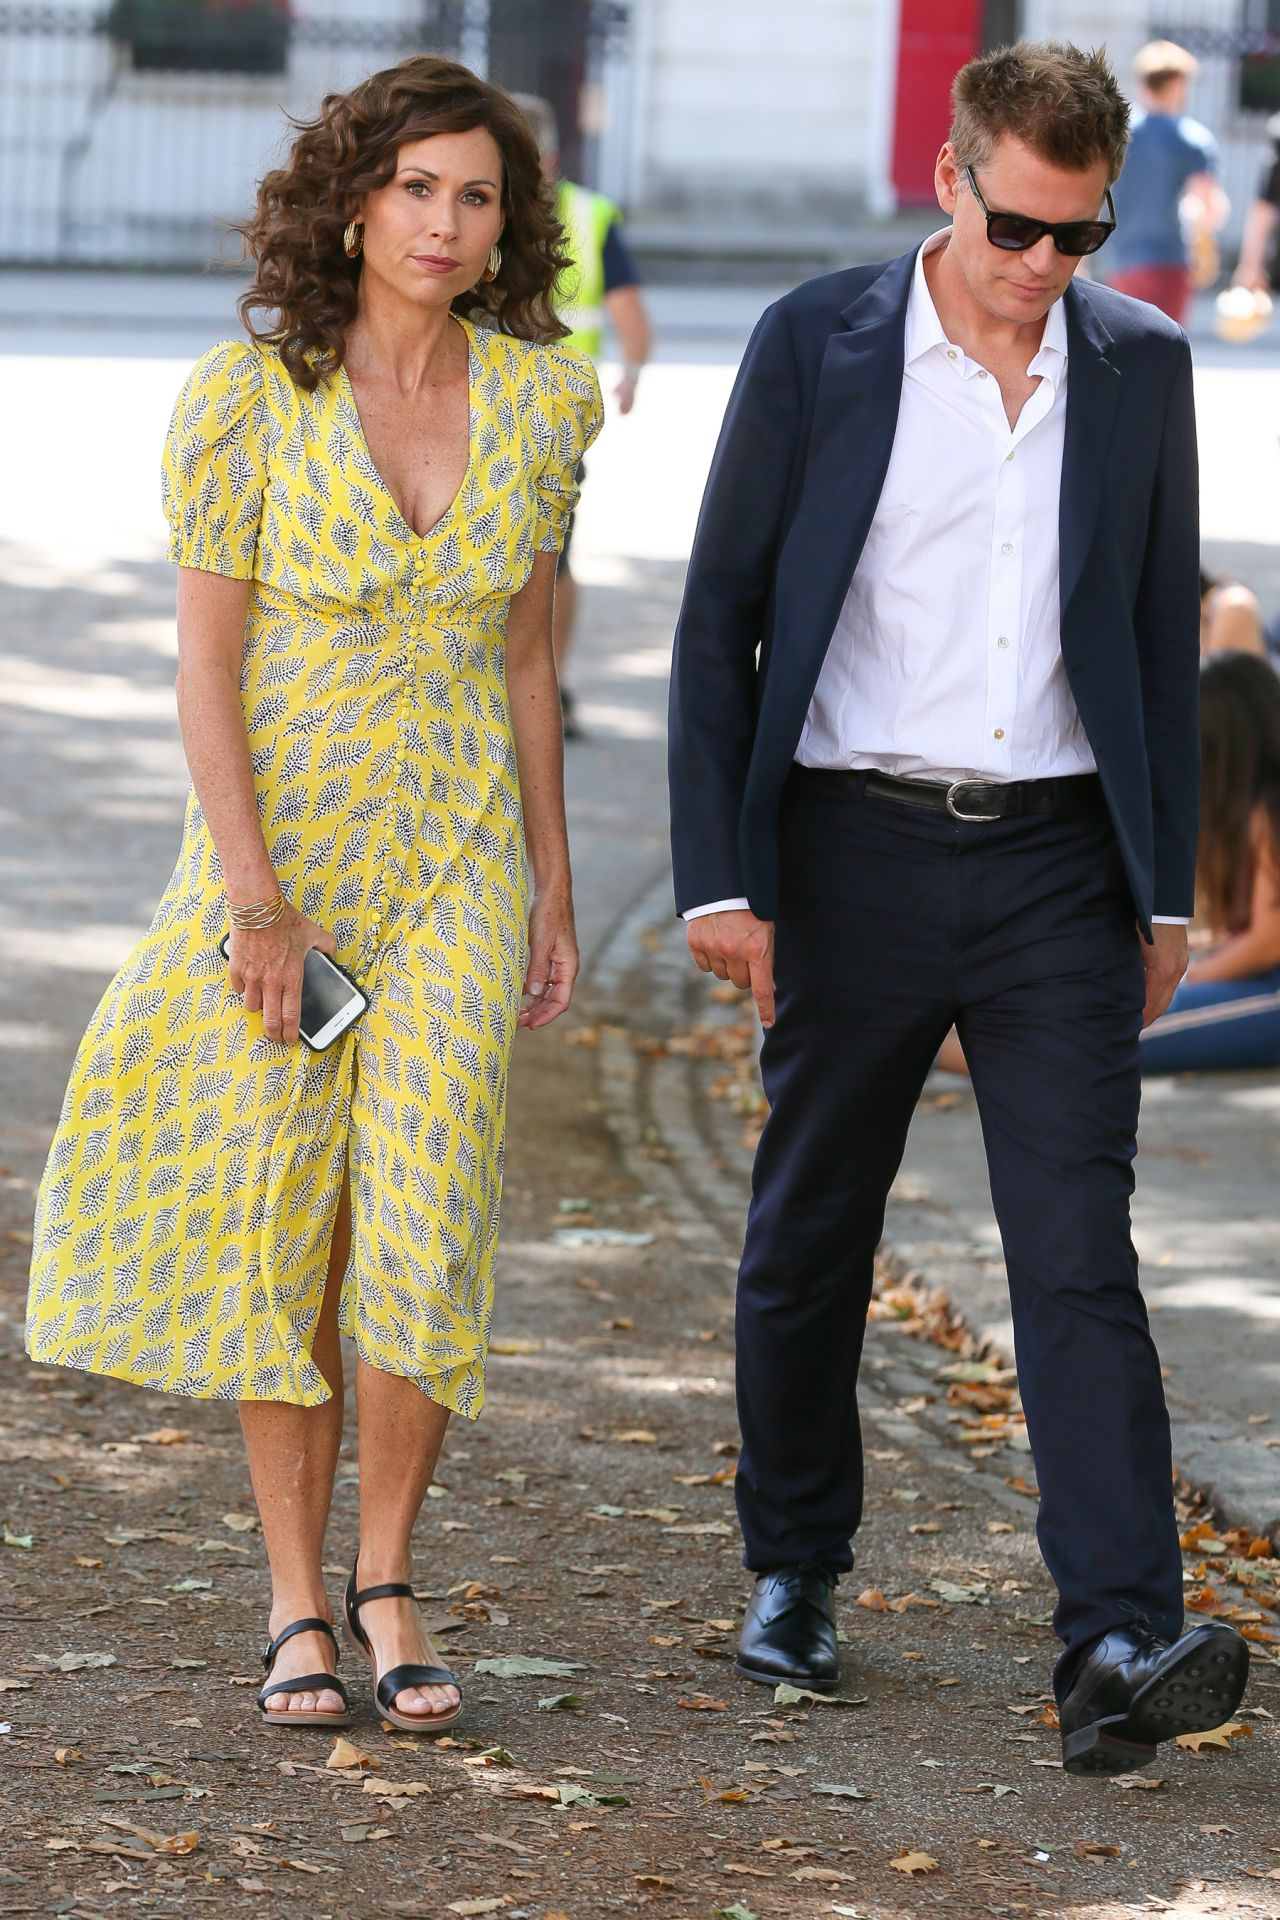 https://celebmafia.com/wp-content/uploads/2018/08/minnie-driver-with-former-boyfriend-christopher-turner-in-london-08-01-2018-12.jpg